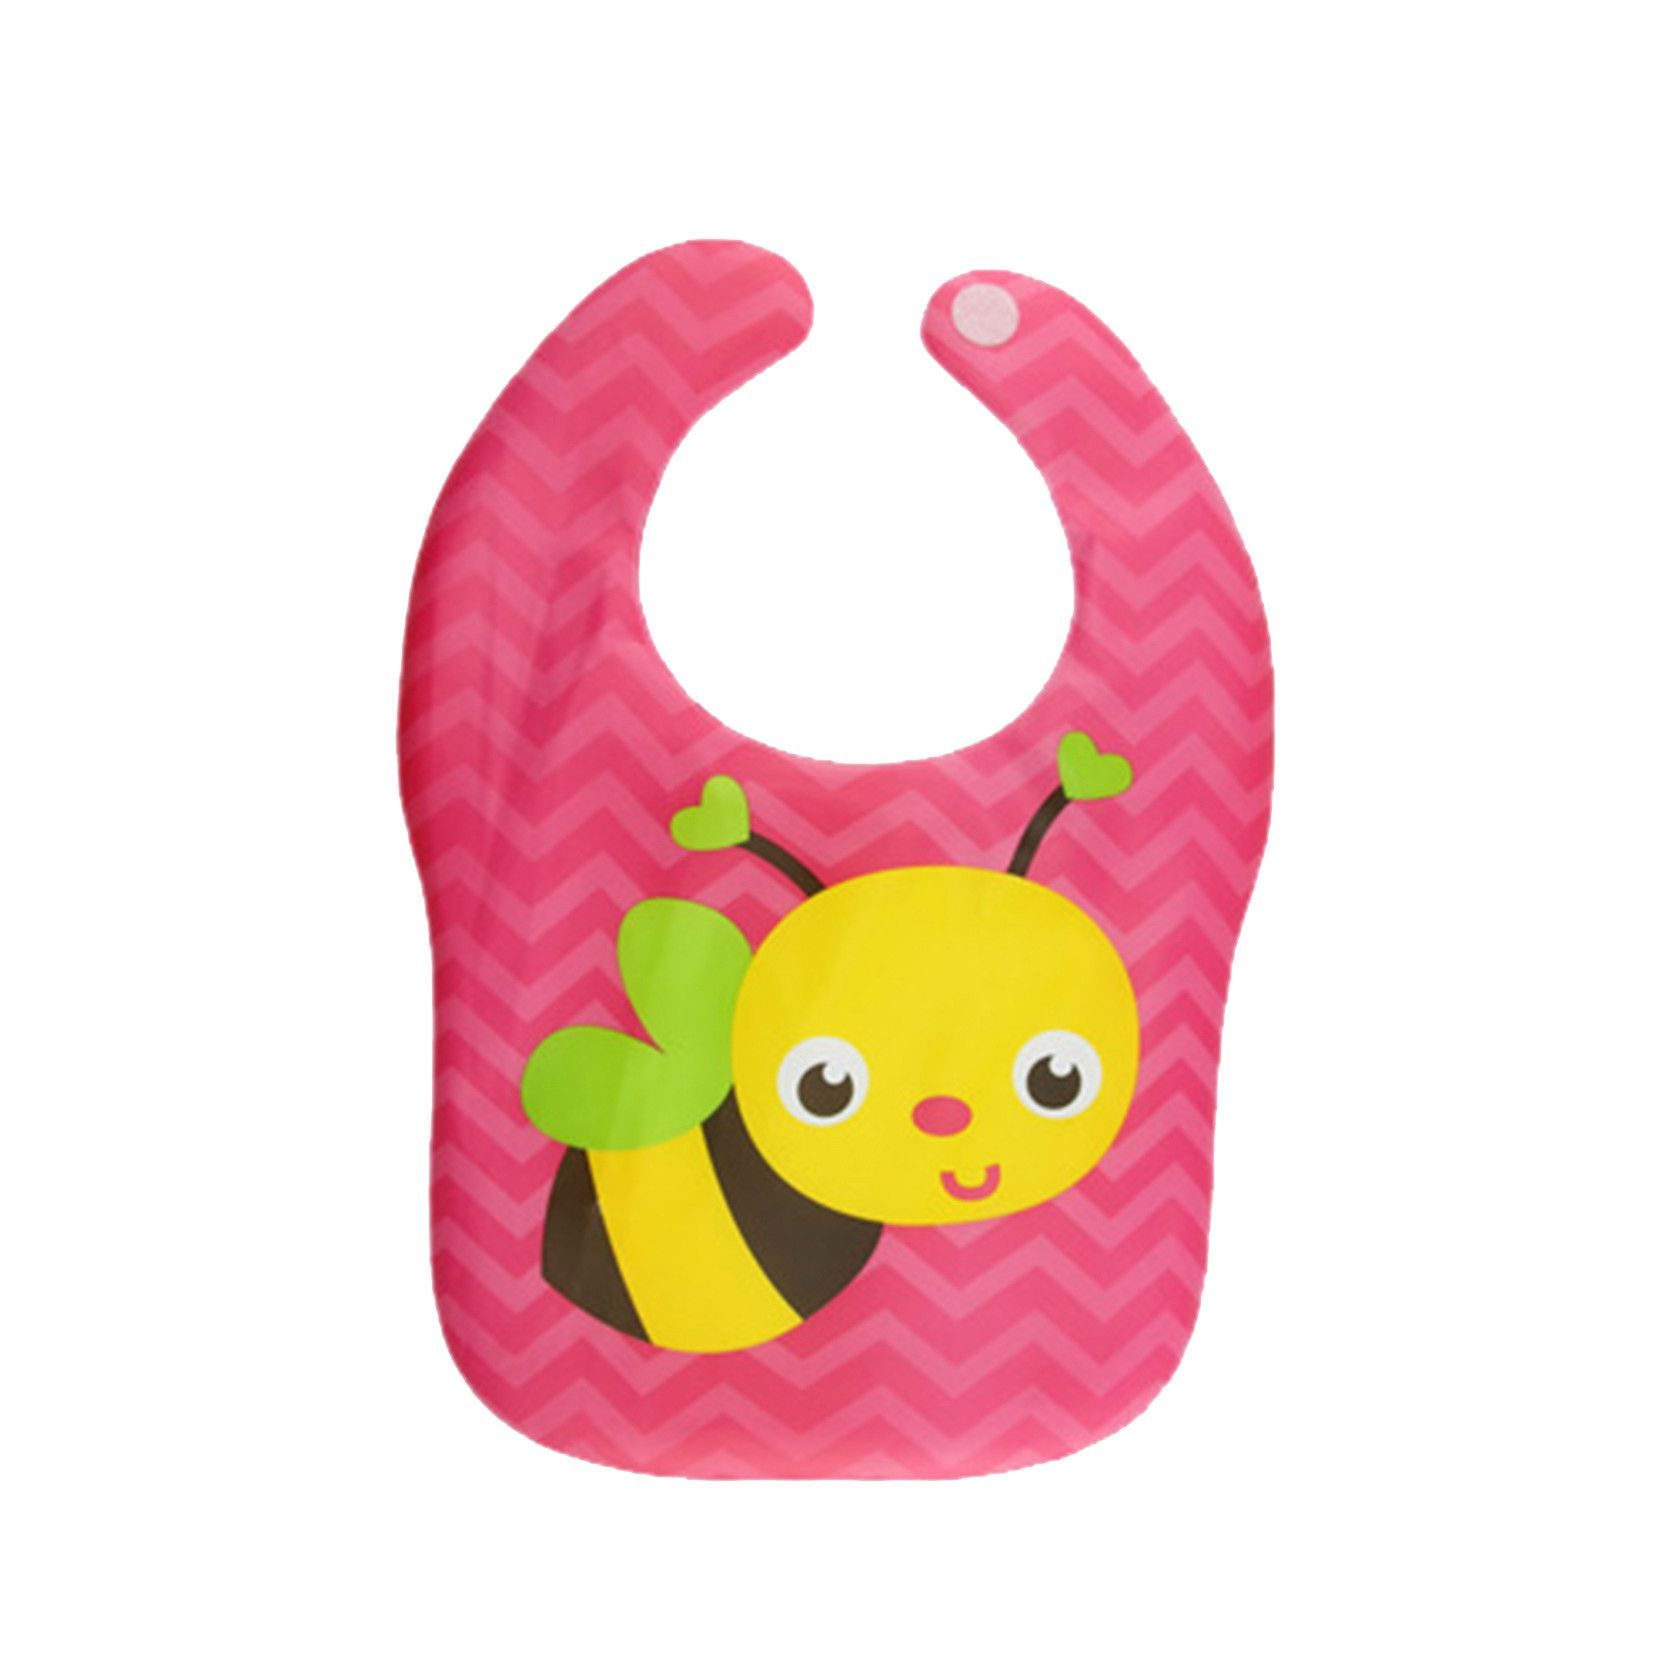 Cute Animal Baby Bibs Waterproof Cartoon Bee Bear Dinosaur Pattern Infant Burp Cloths Baby Boy Girl Clothing Accessories